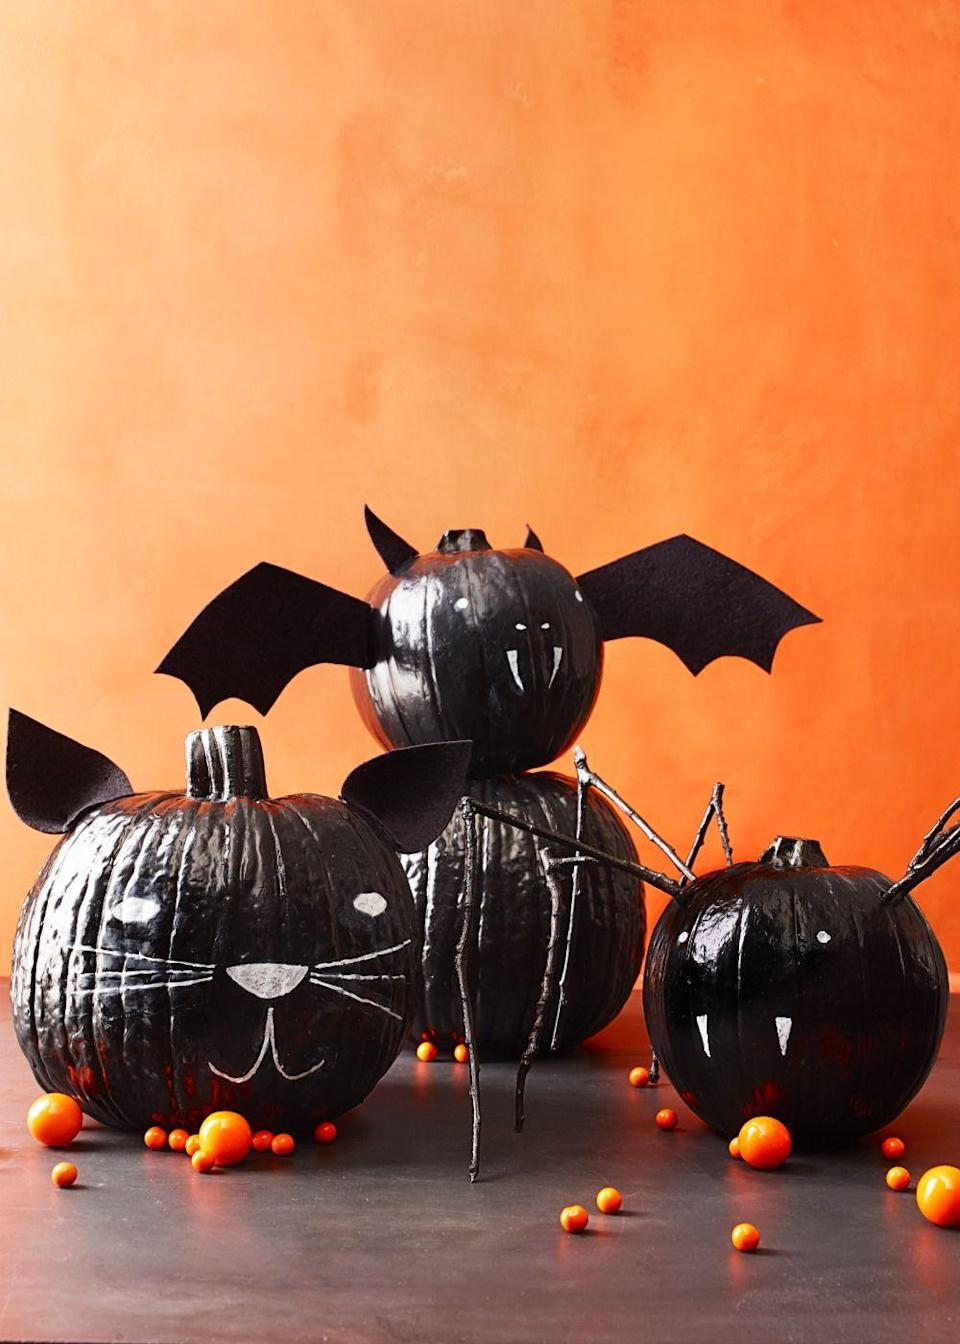 "<p>Transform gourds with a little bit of paint (and wings, and eyes) to make them that much spookier.</p><p><a class=""link rapid-noclick-resp"" href=""https://www.amazon.com/DecoArt-DCA47-9-Crafters-Acrylic-8-Ounce/dp/B001C2EYT8/?tag=syn-yahoo-20&ascsubtag=%5Bartid%7C10055.g.1566%5Bsrc%7Cyahoo-us"" rel=""nofollow noopener"" target=""_blank"" data-ylk=""slk:SHOP BLACK PAINT"">SHOP BLACK PAINT</a></p>"